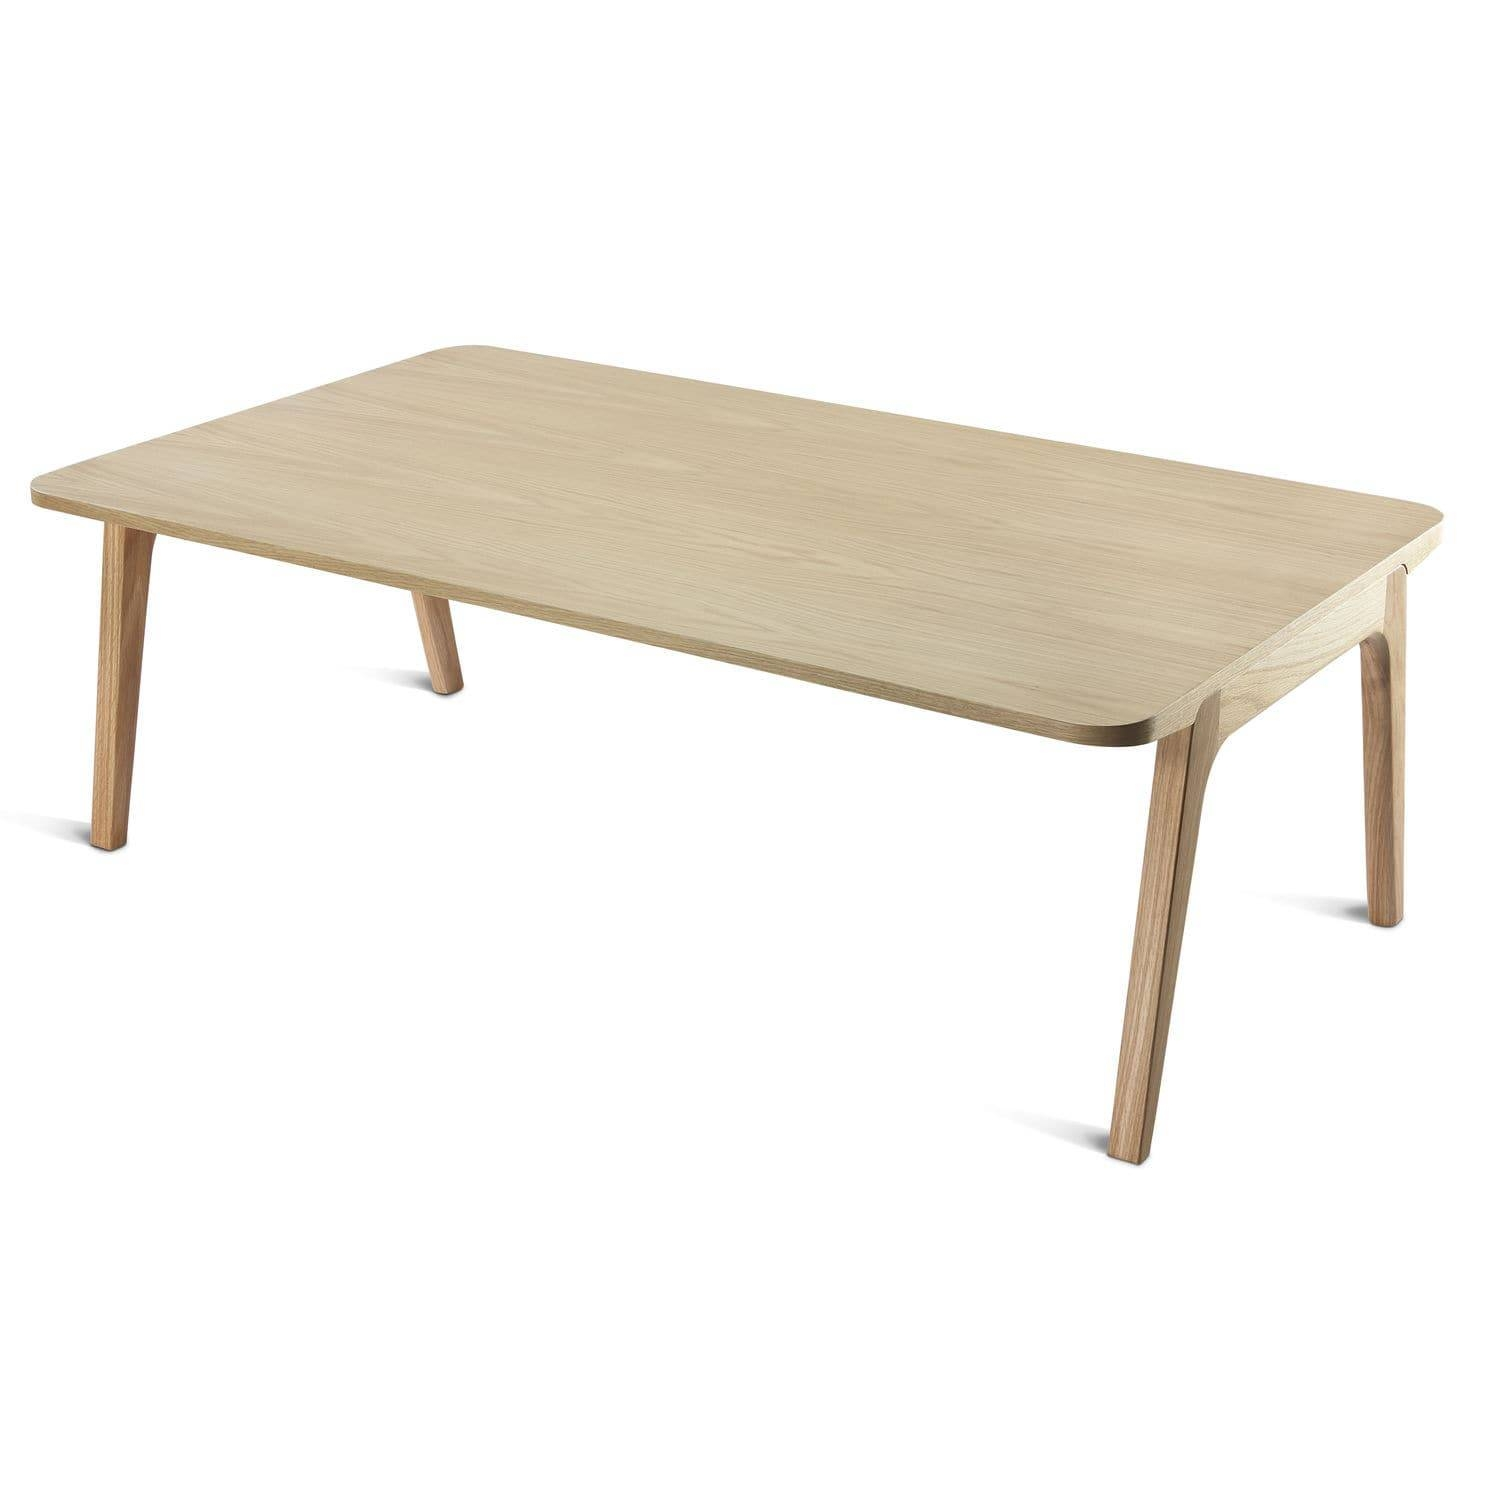 Contemporary Coffee Table / Oak / Rectangular / For Public with Contemporary Oak Coffee Table (Image 7 of 15)